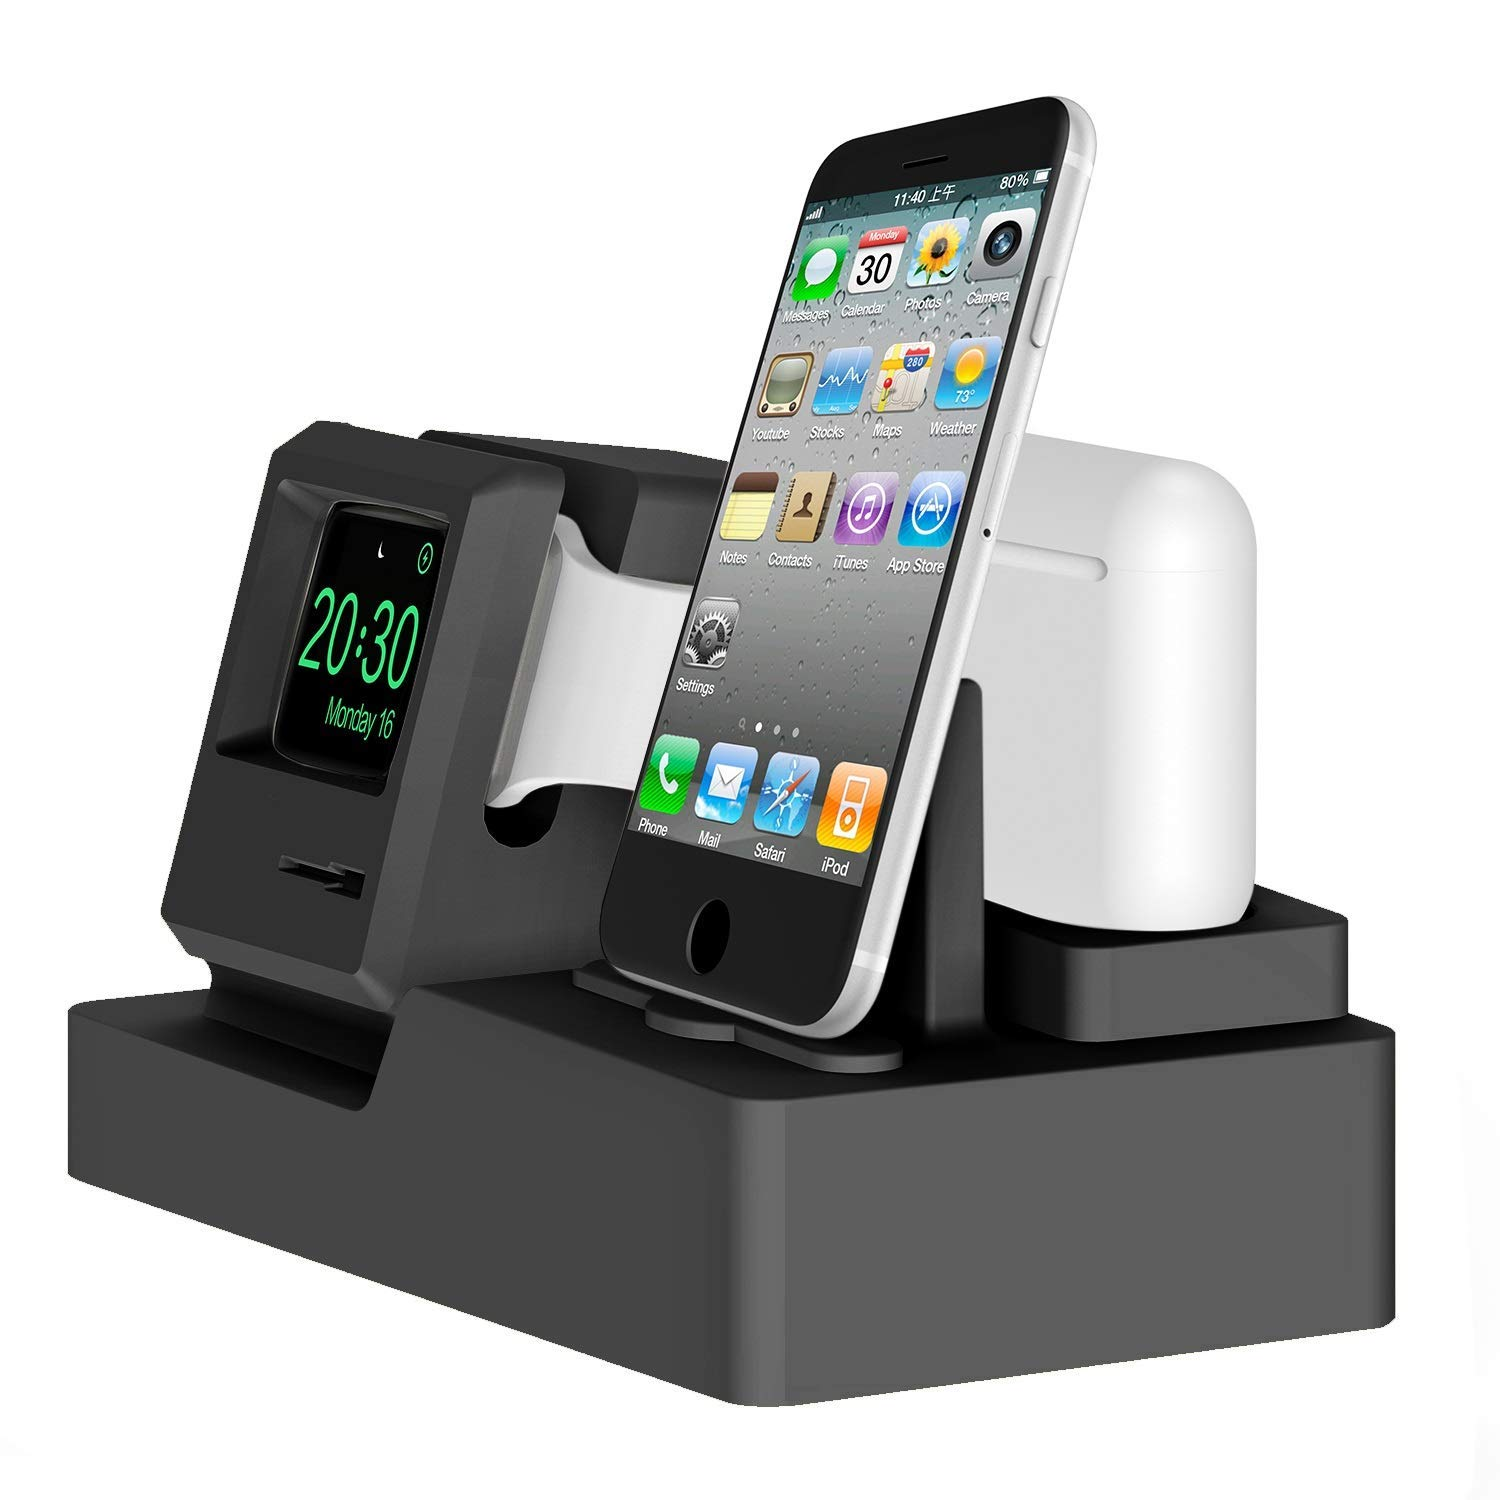 Xflelectronic Charging Station Dock for IWatch AirPods Charger Stand Charging Holder for Apple Watch Series 4/3/2/1/ AirPods/iPhone X/8/8Plus/7/7 Plus by Xflelectronic